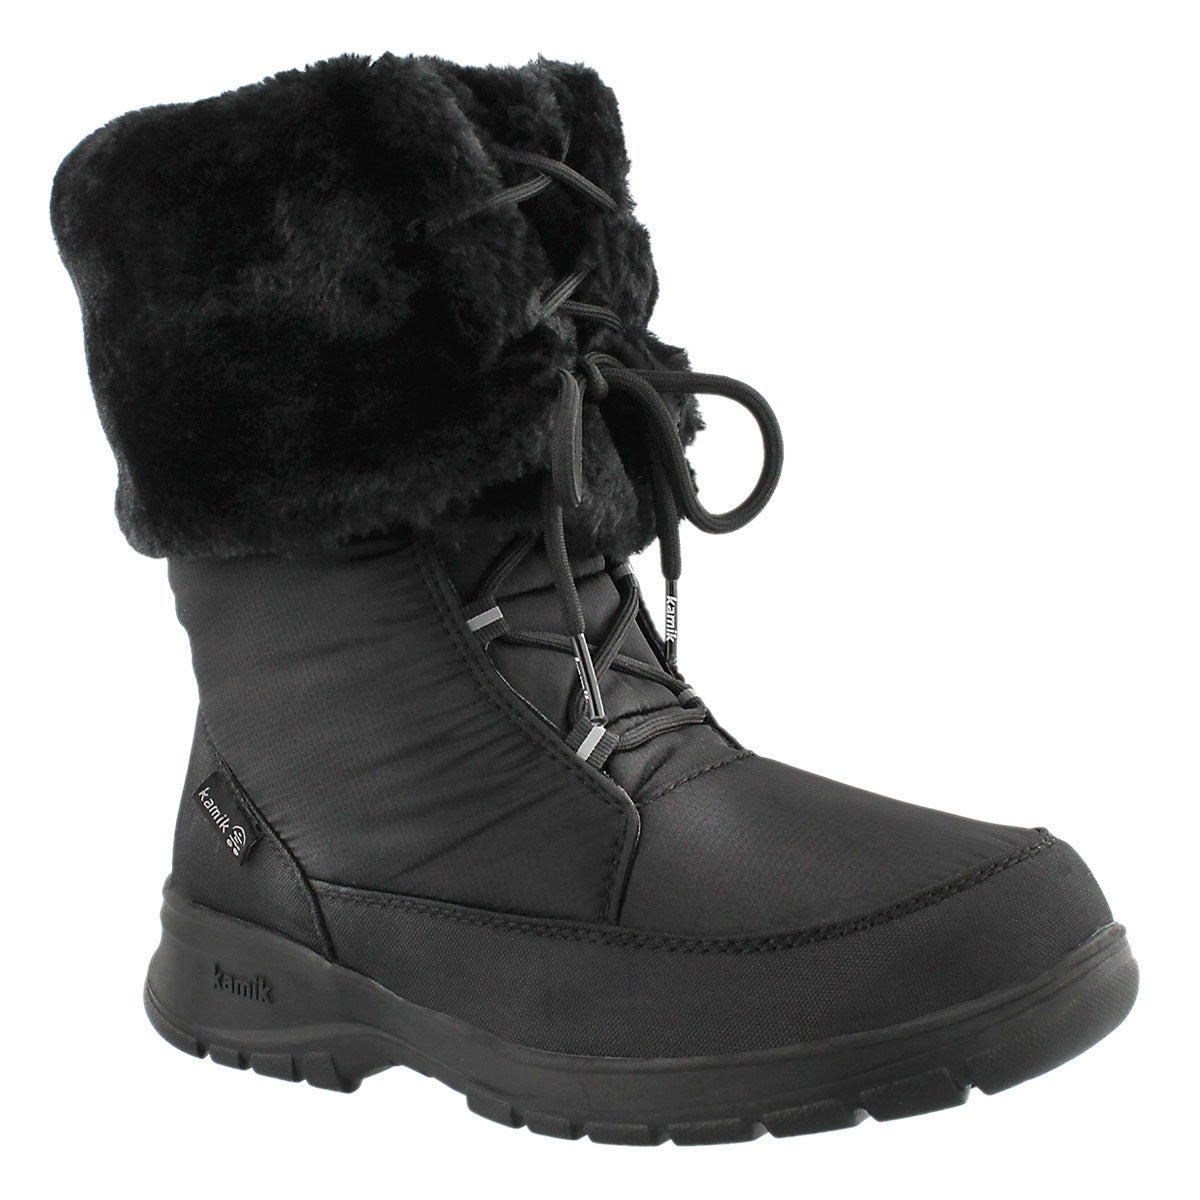 Women's SEATTLE black lace-up winter boots